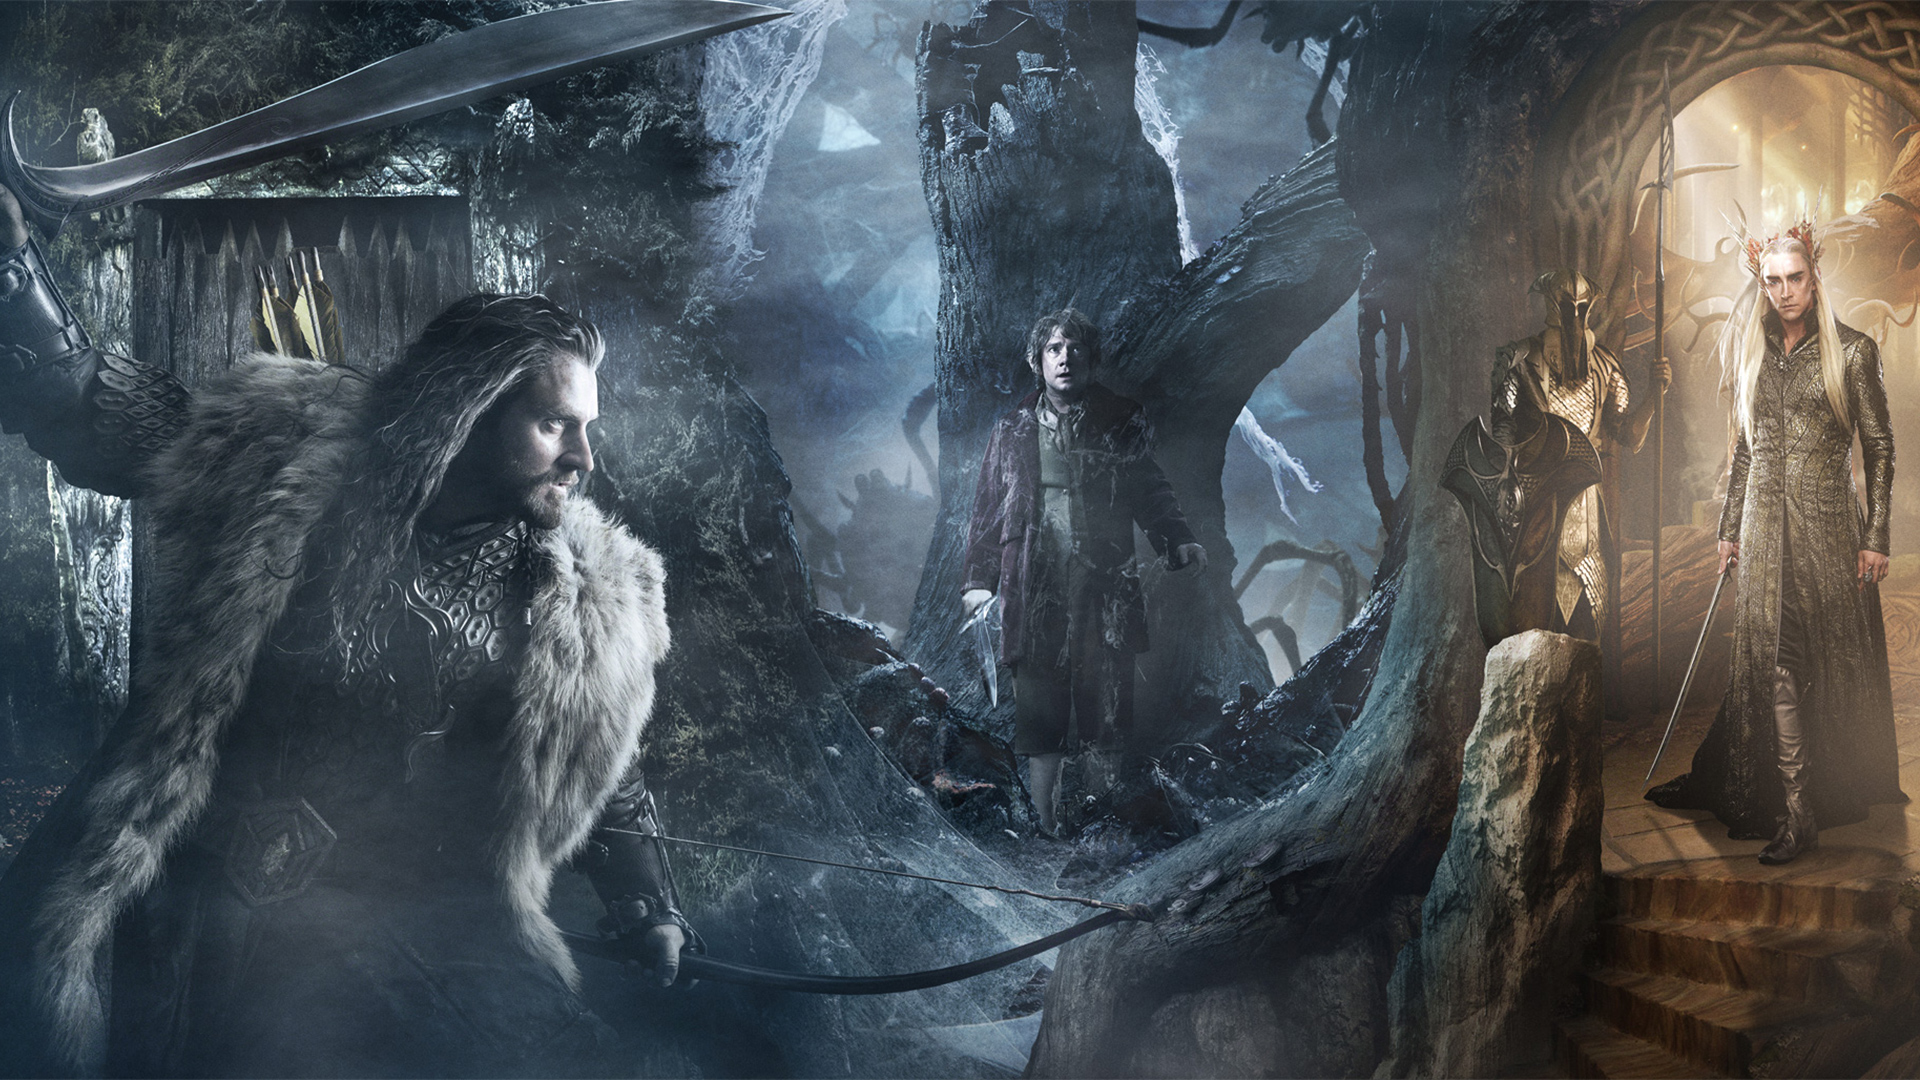 1920x1080 The Hobbit The Desolation of Smaug Trio desktop PC and Mac 1920x1080